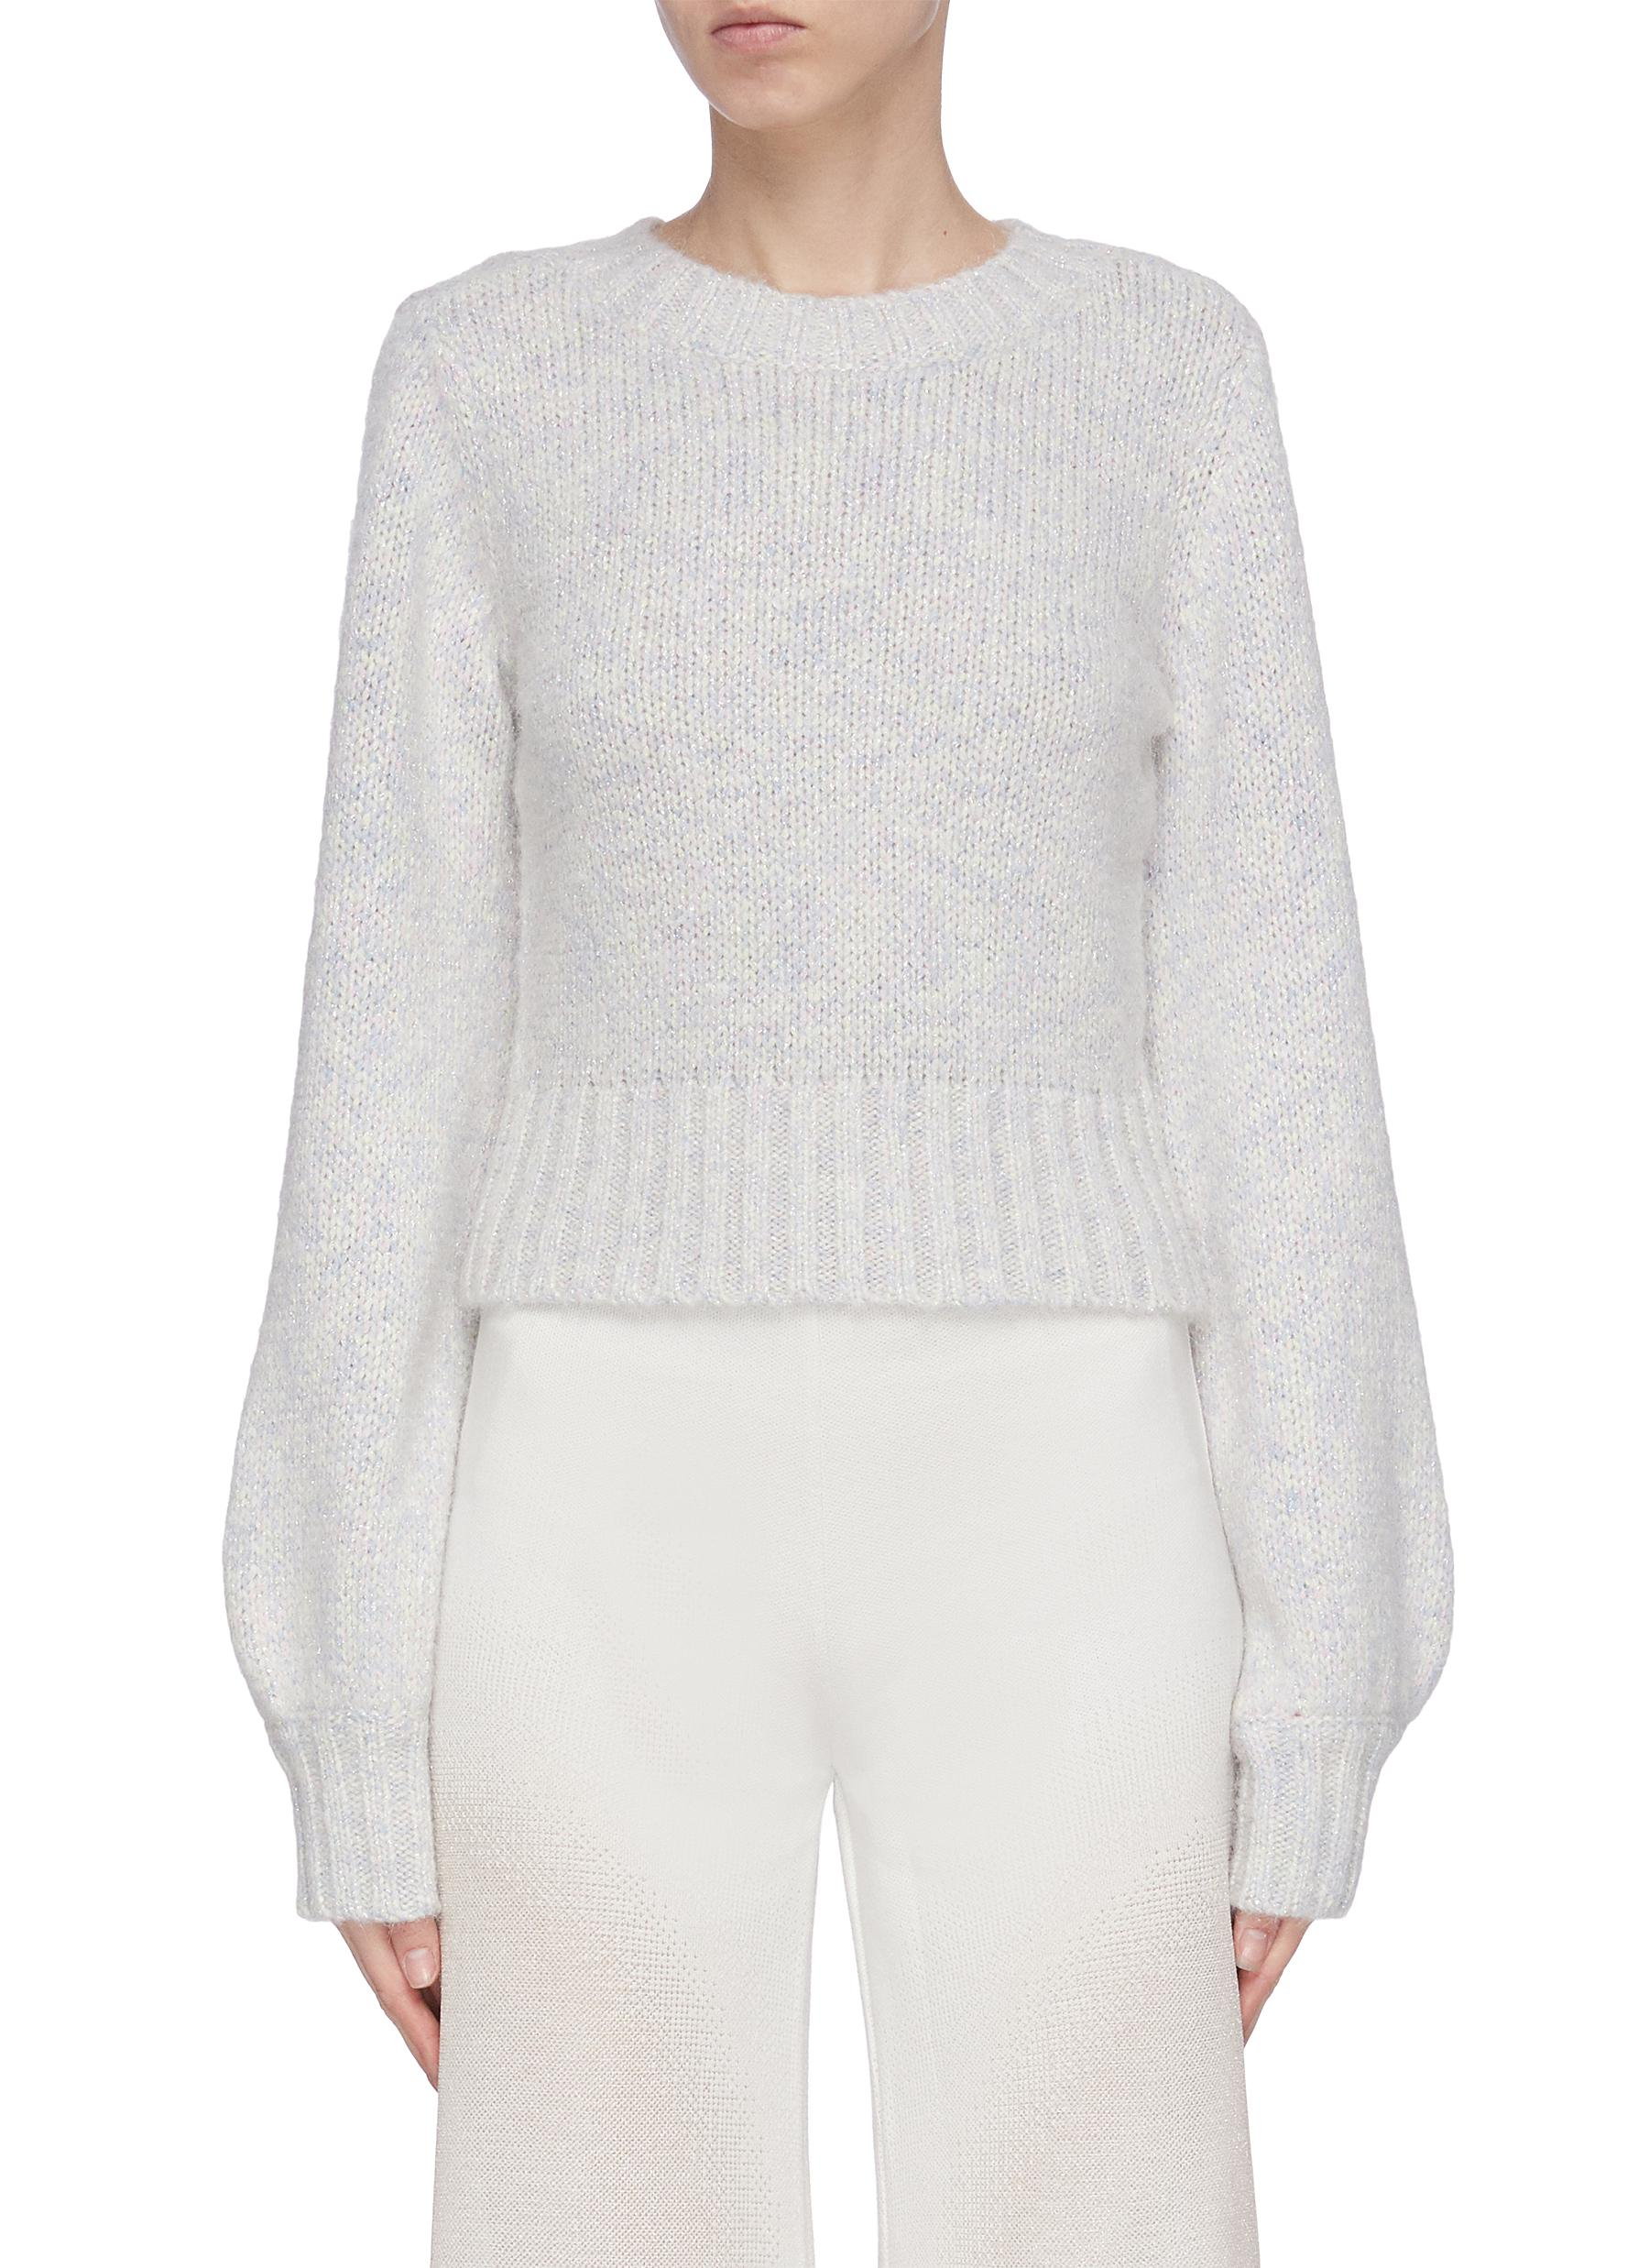 Buy Staud Knitwear 'Inu' blouson sleeve sweater